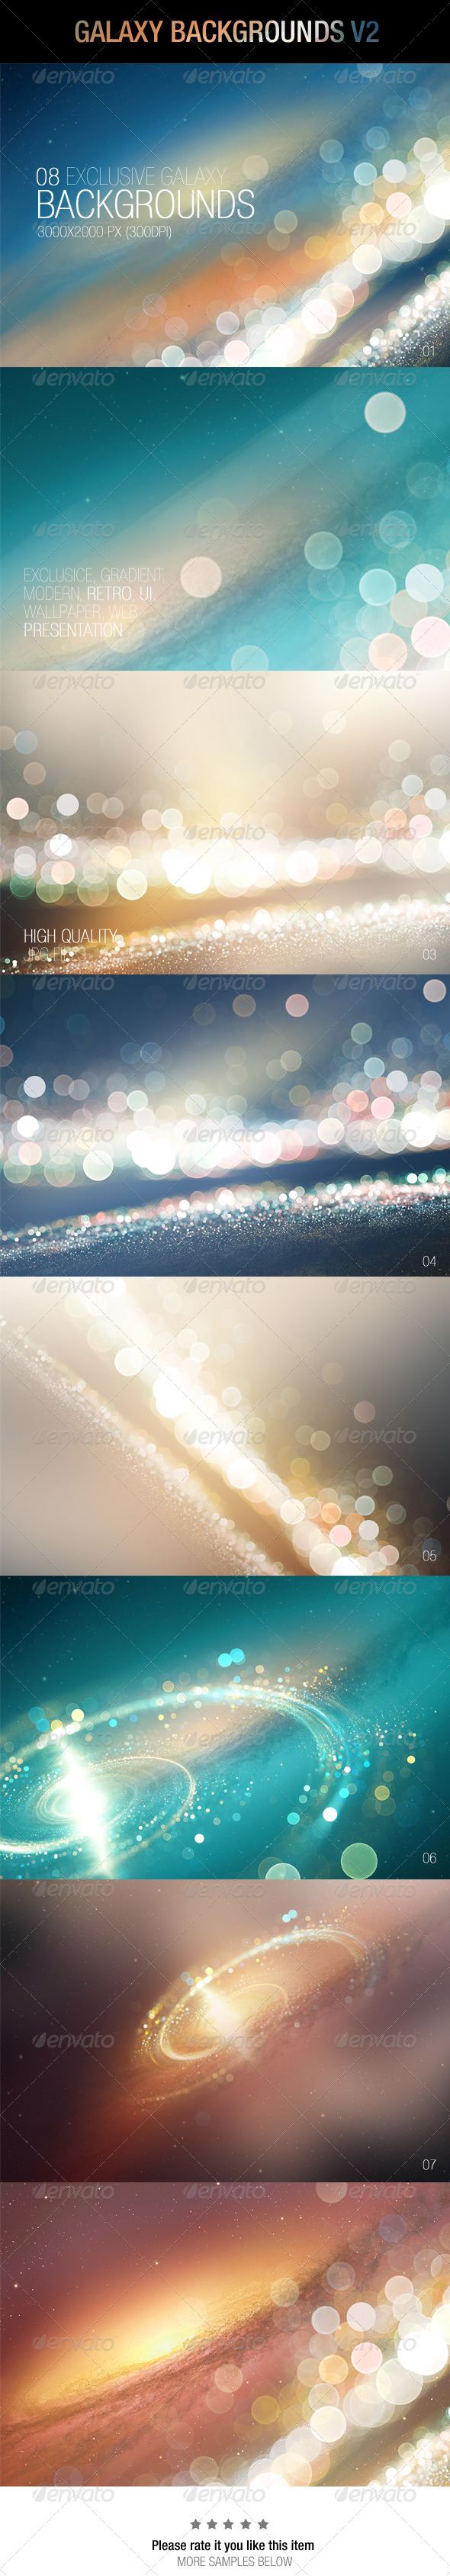 GraphicRiver Galaxy Backgrounds V2 6859974